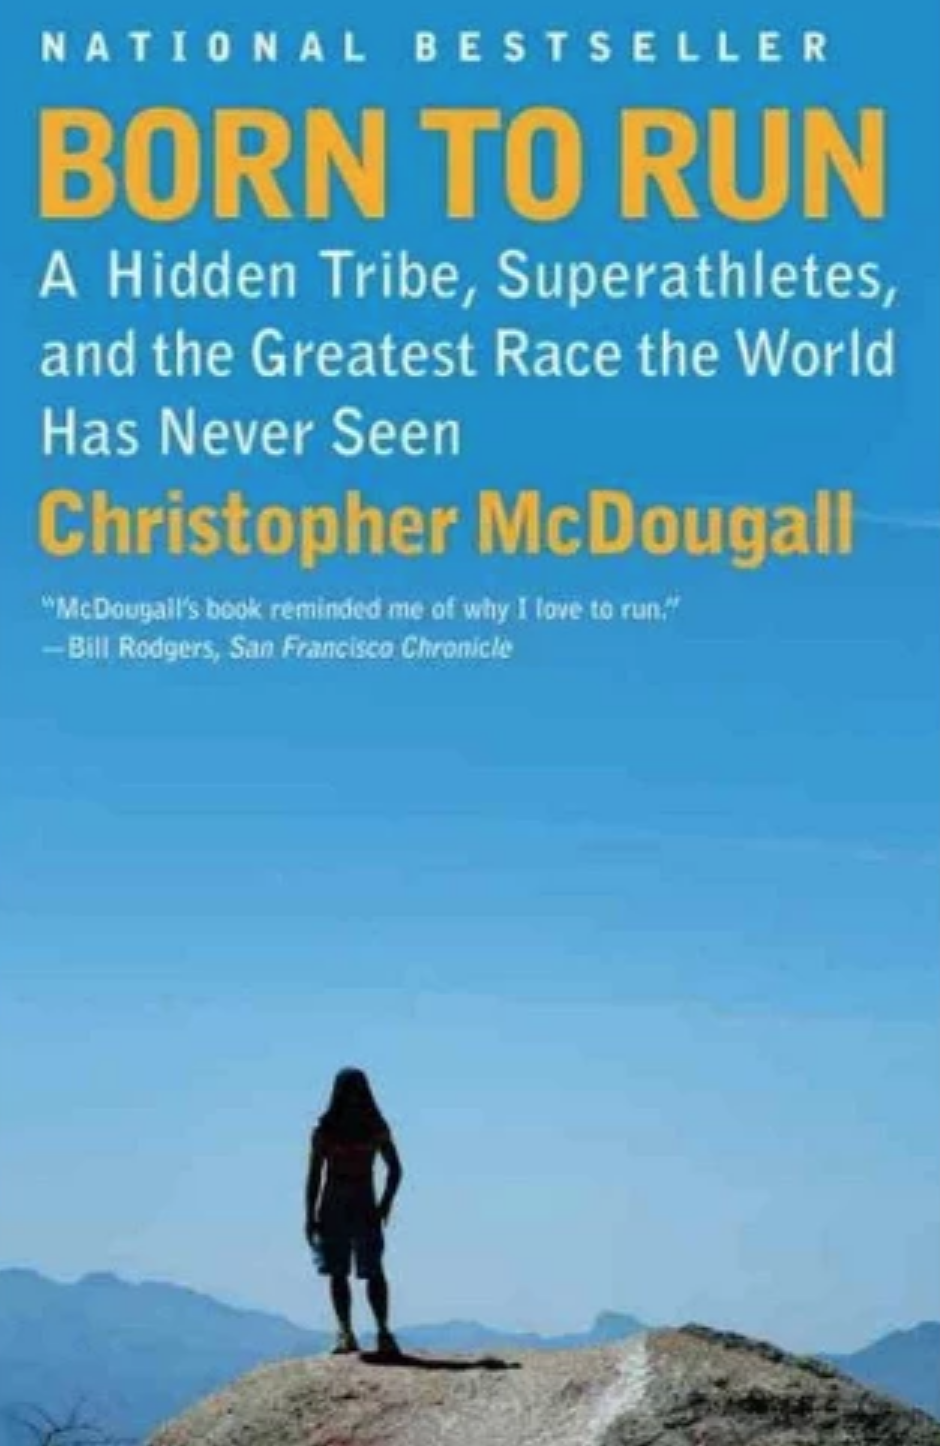 """Born to Run: A Hidden Tribe, Superathletes, and the Greatest Race the World Has Never Seen"" (2009) by Christopher MCDougall"